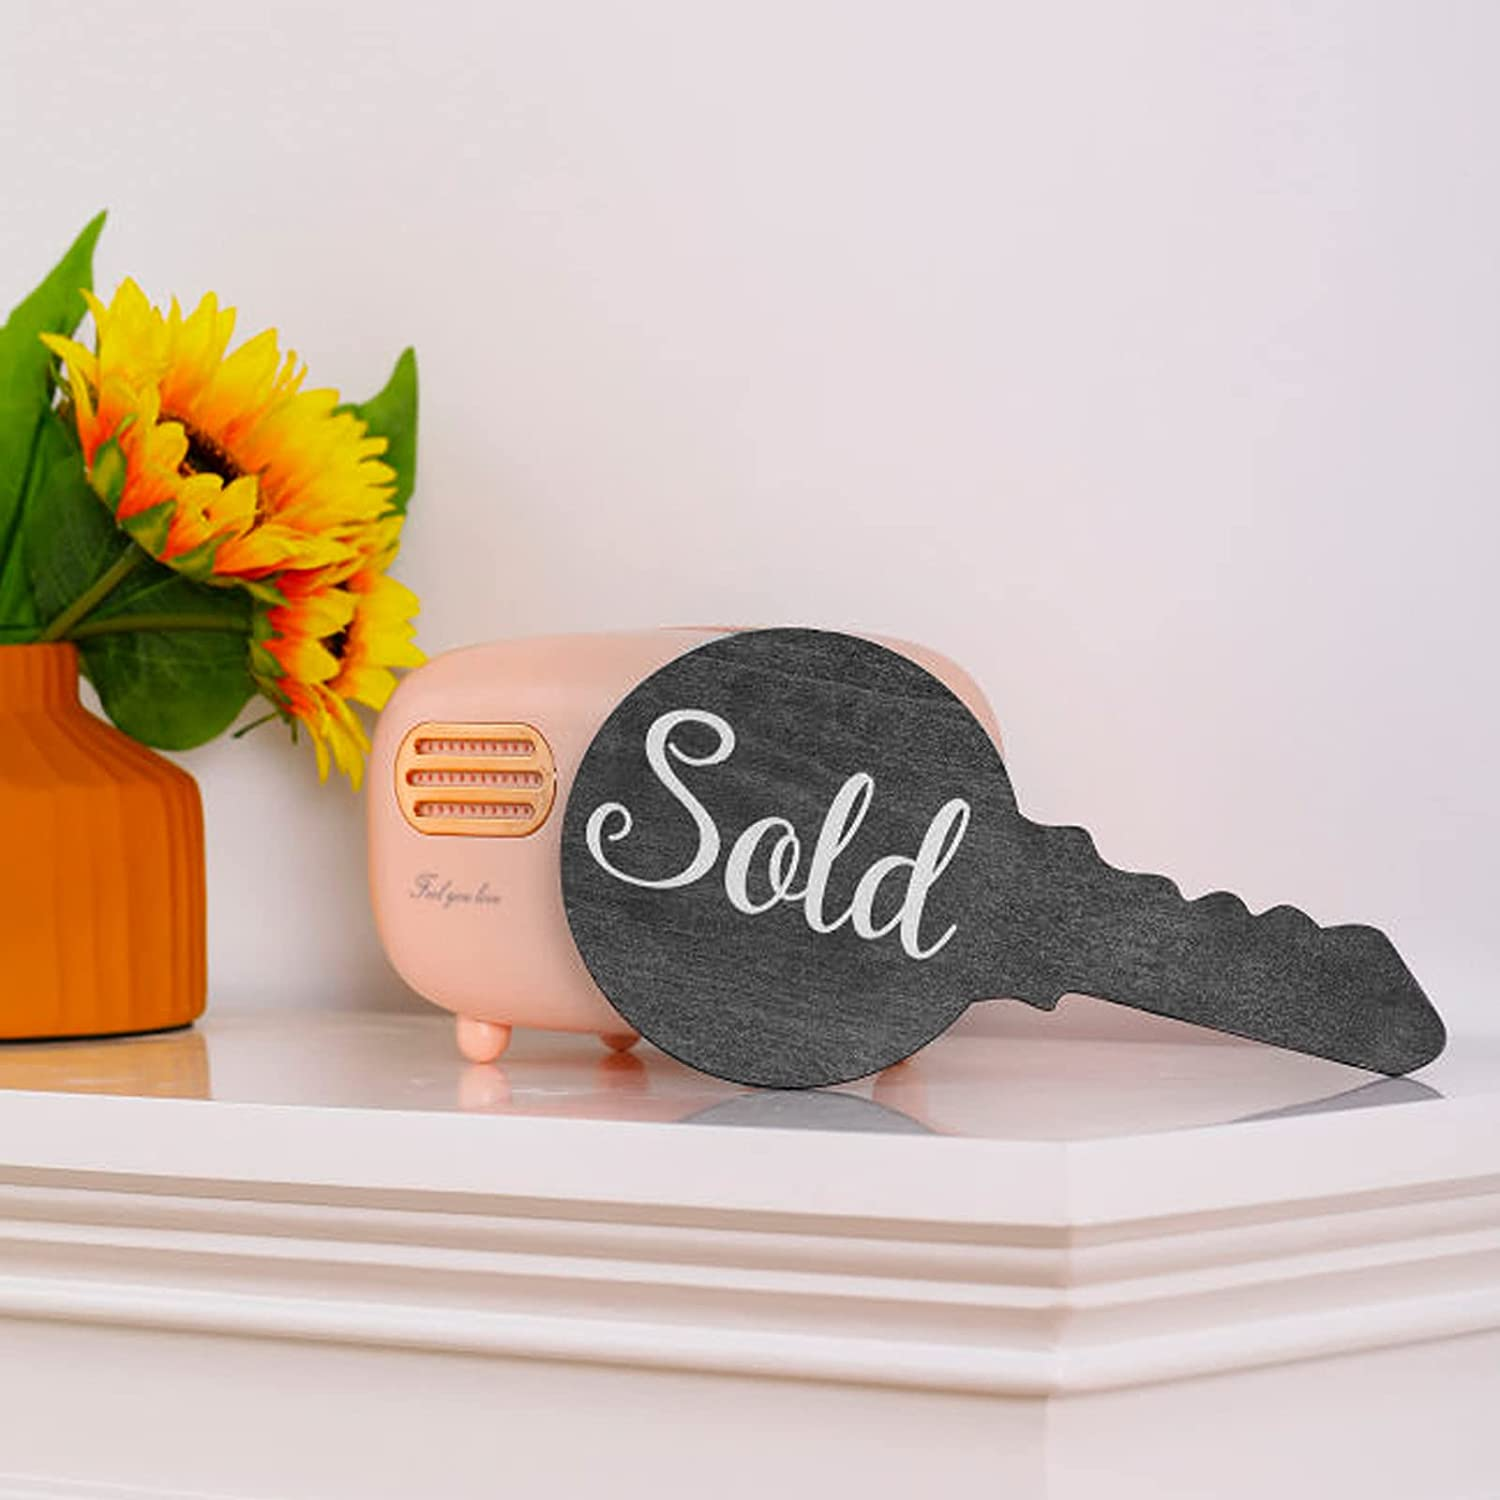 Real Estate Sold Sign 67% OFF of fixed price for Key Shaped Homeowners Deluxe New